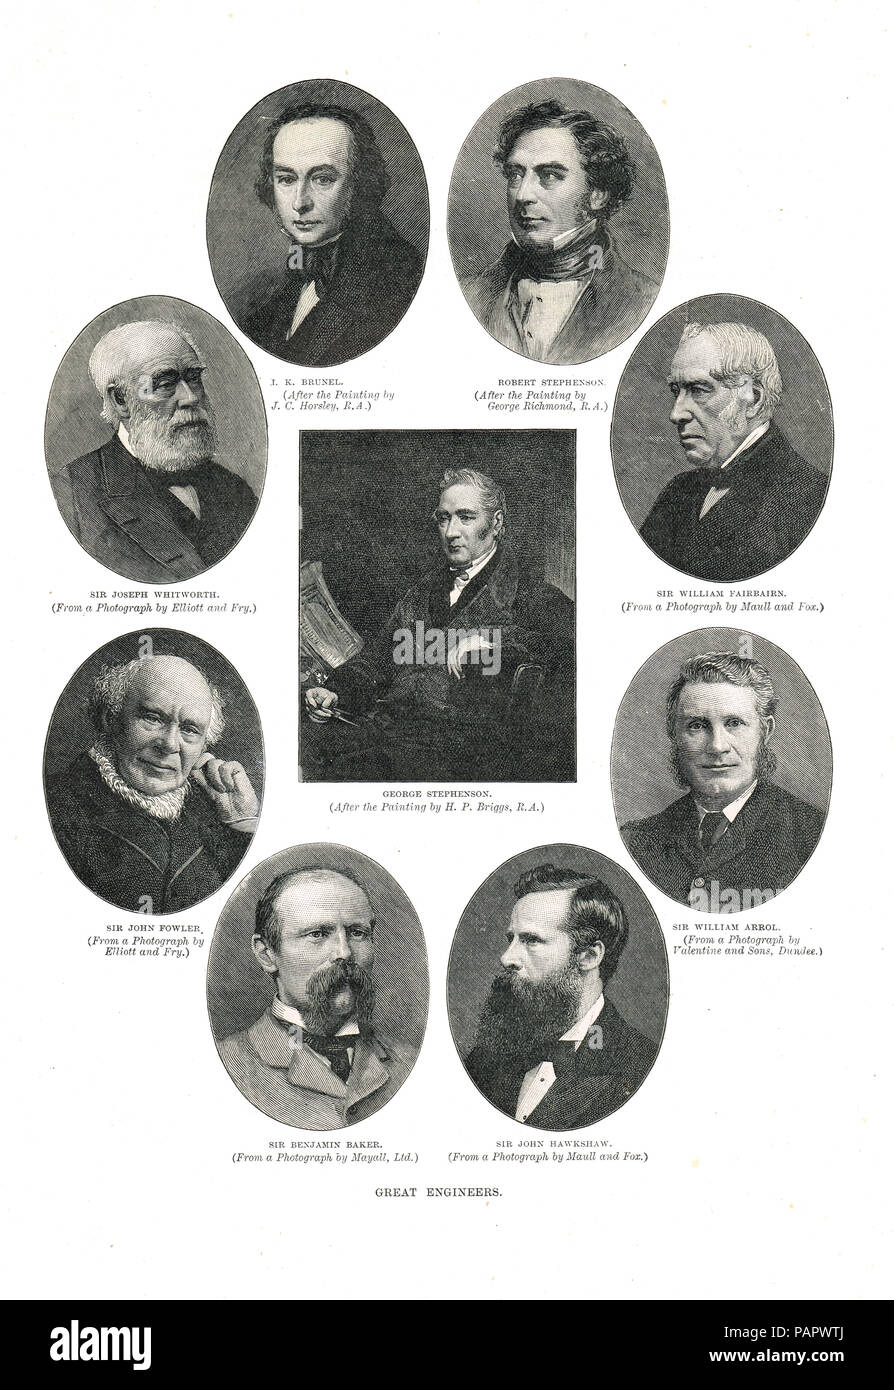 Great Engineers of the Victorian era - Stock Image